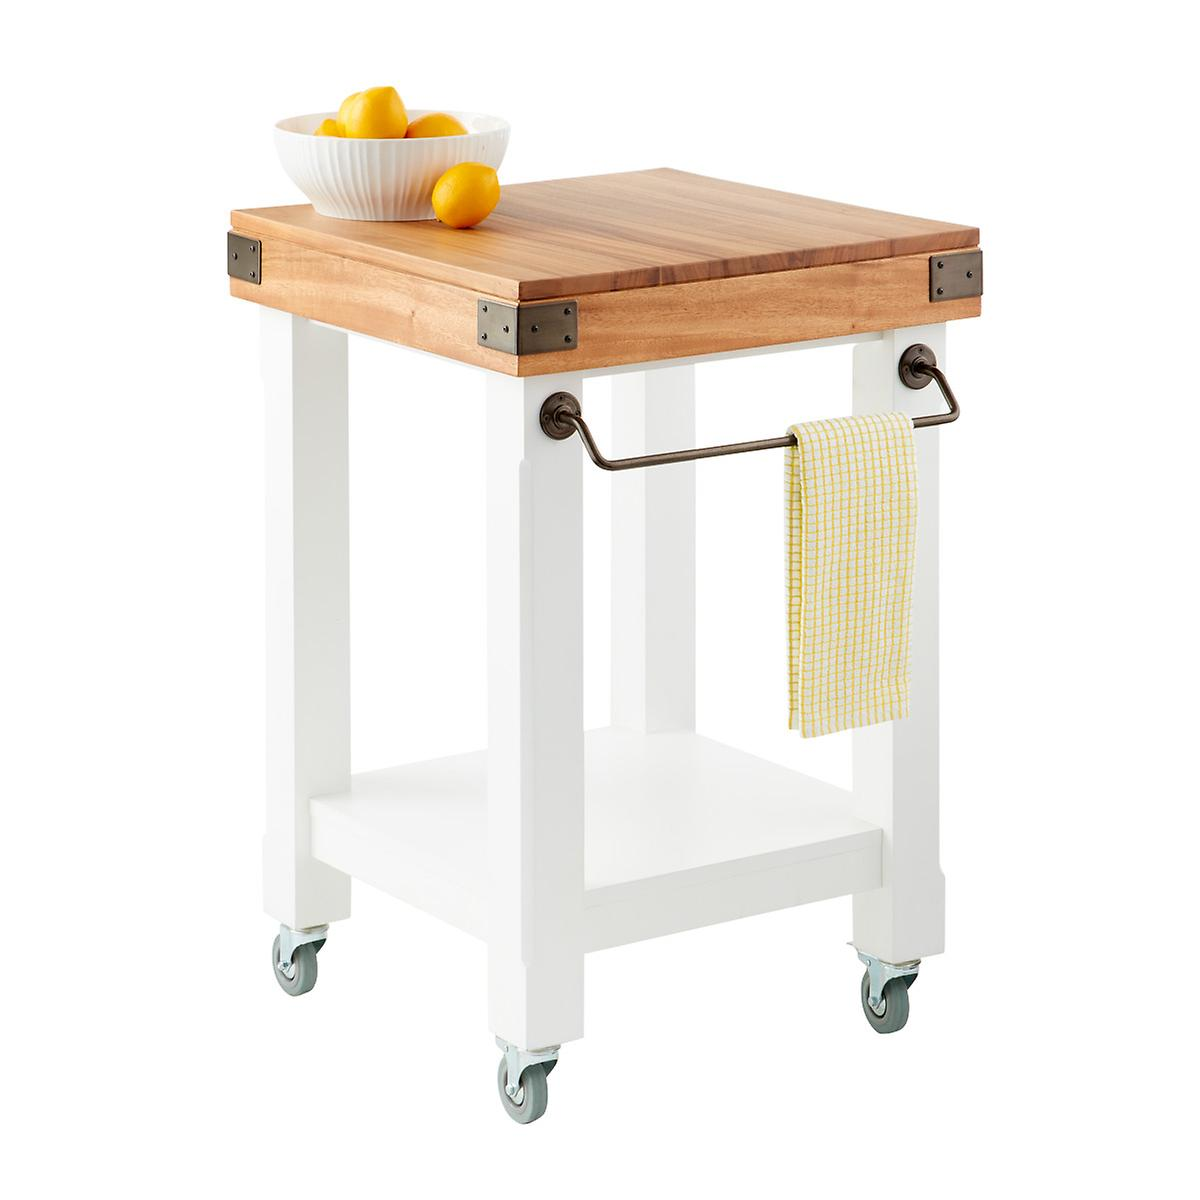 Butcher Block Rolling Kitchen Island Cart | The Container Store